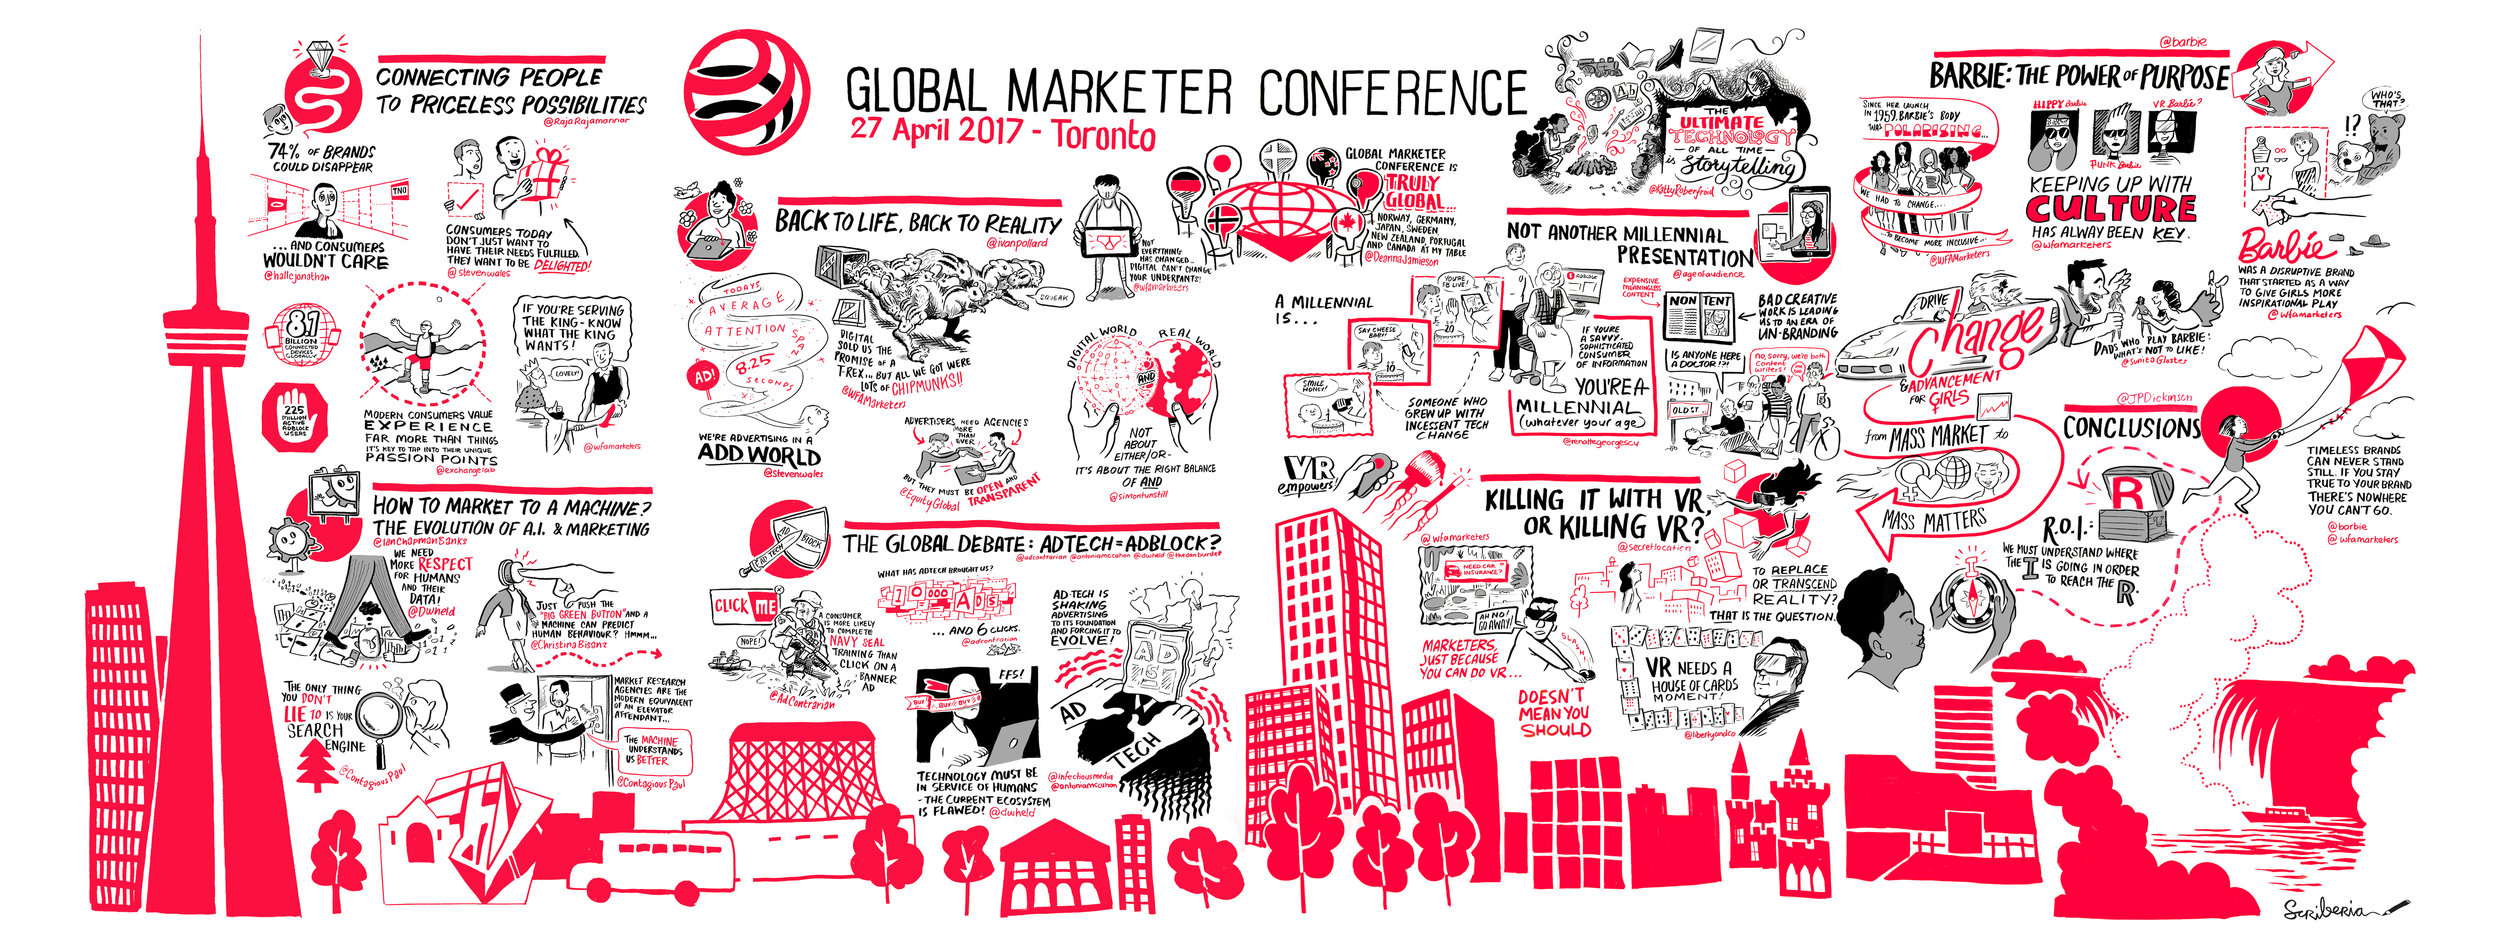 Completed Scribing Wall. Sketchnoting Illustration at the WFA Global Marketer Conference, Toronto 2017